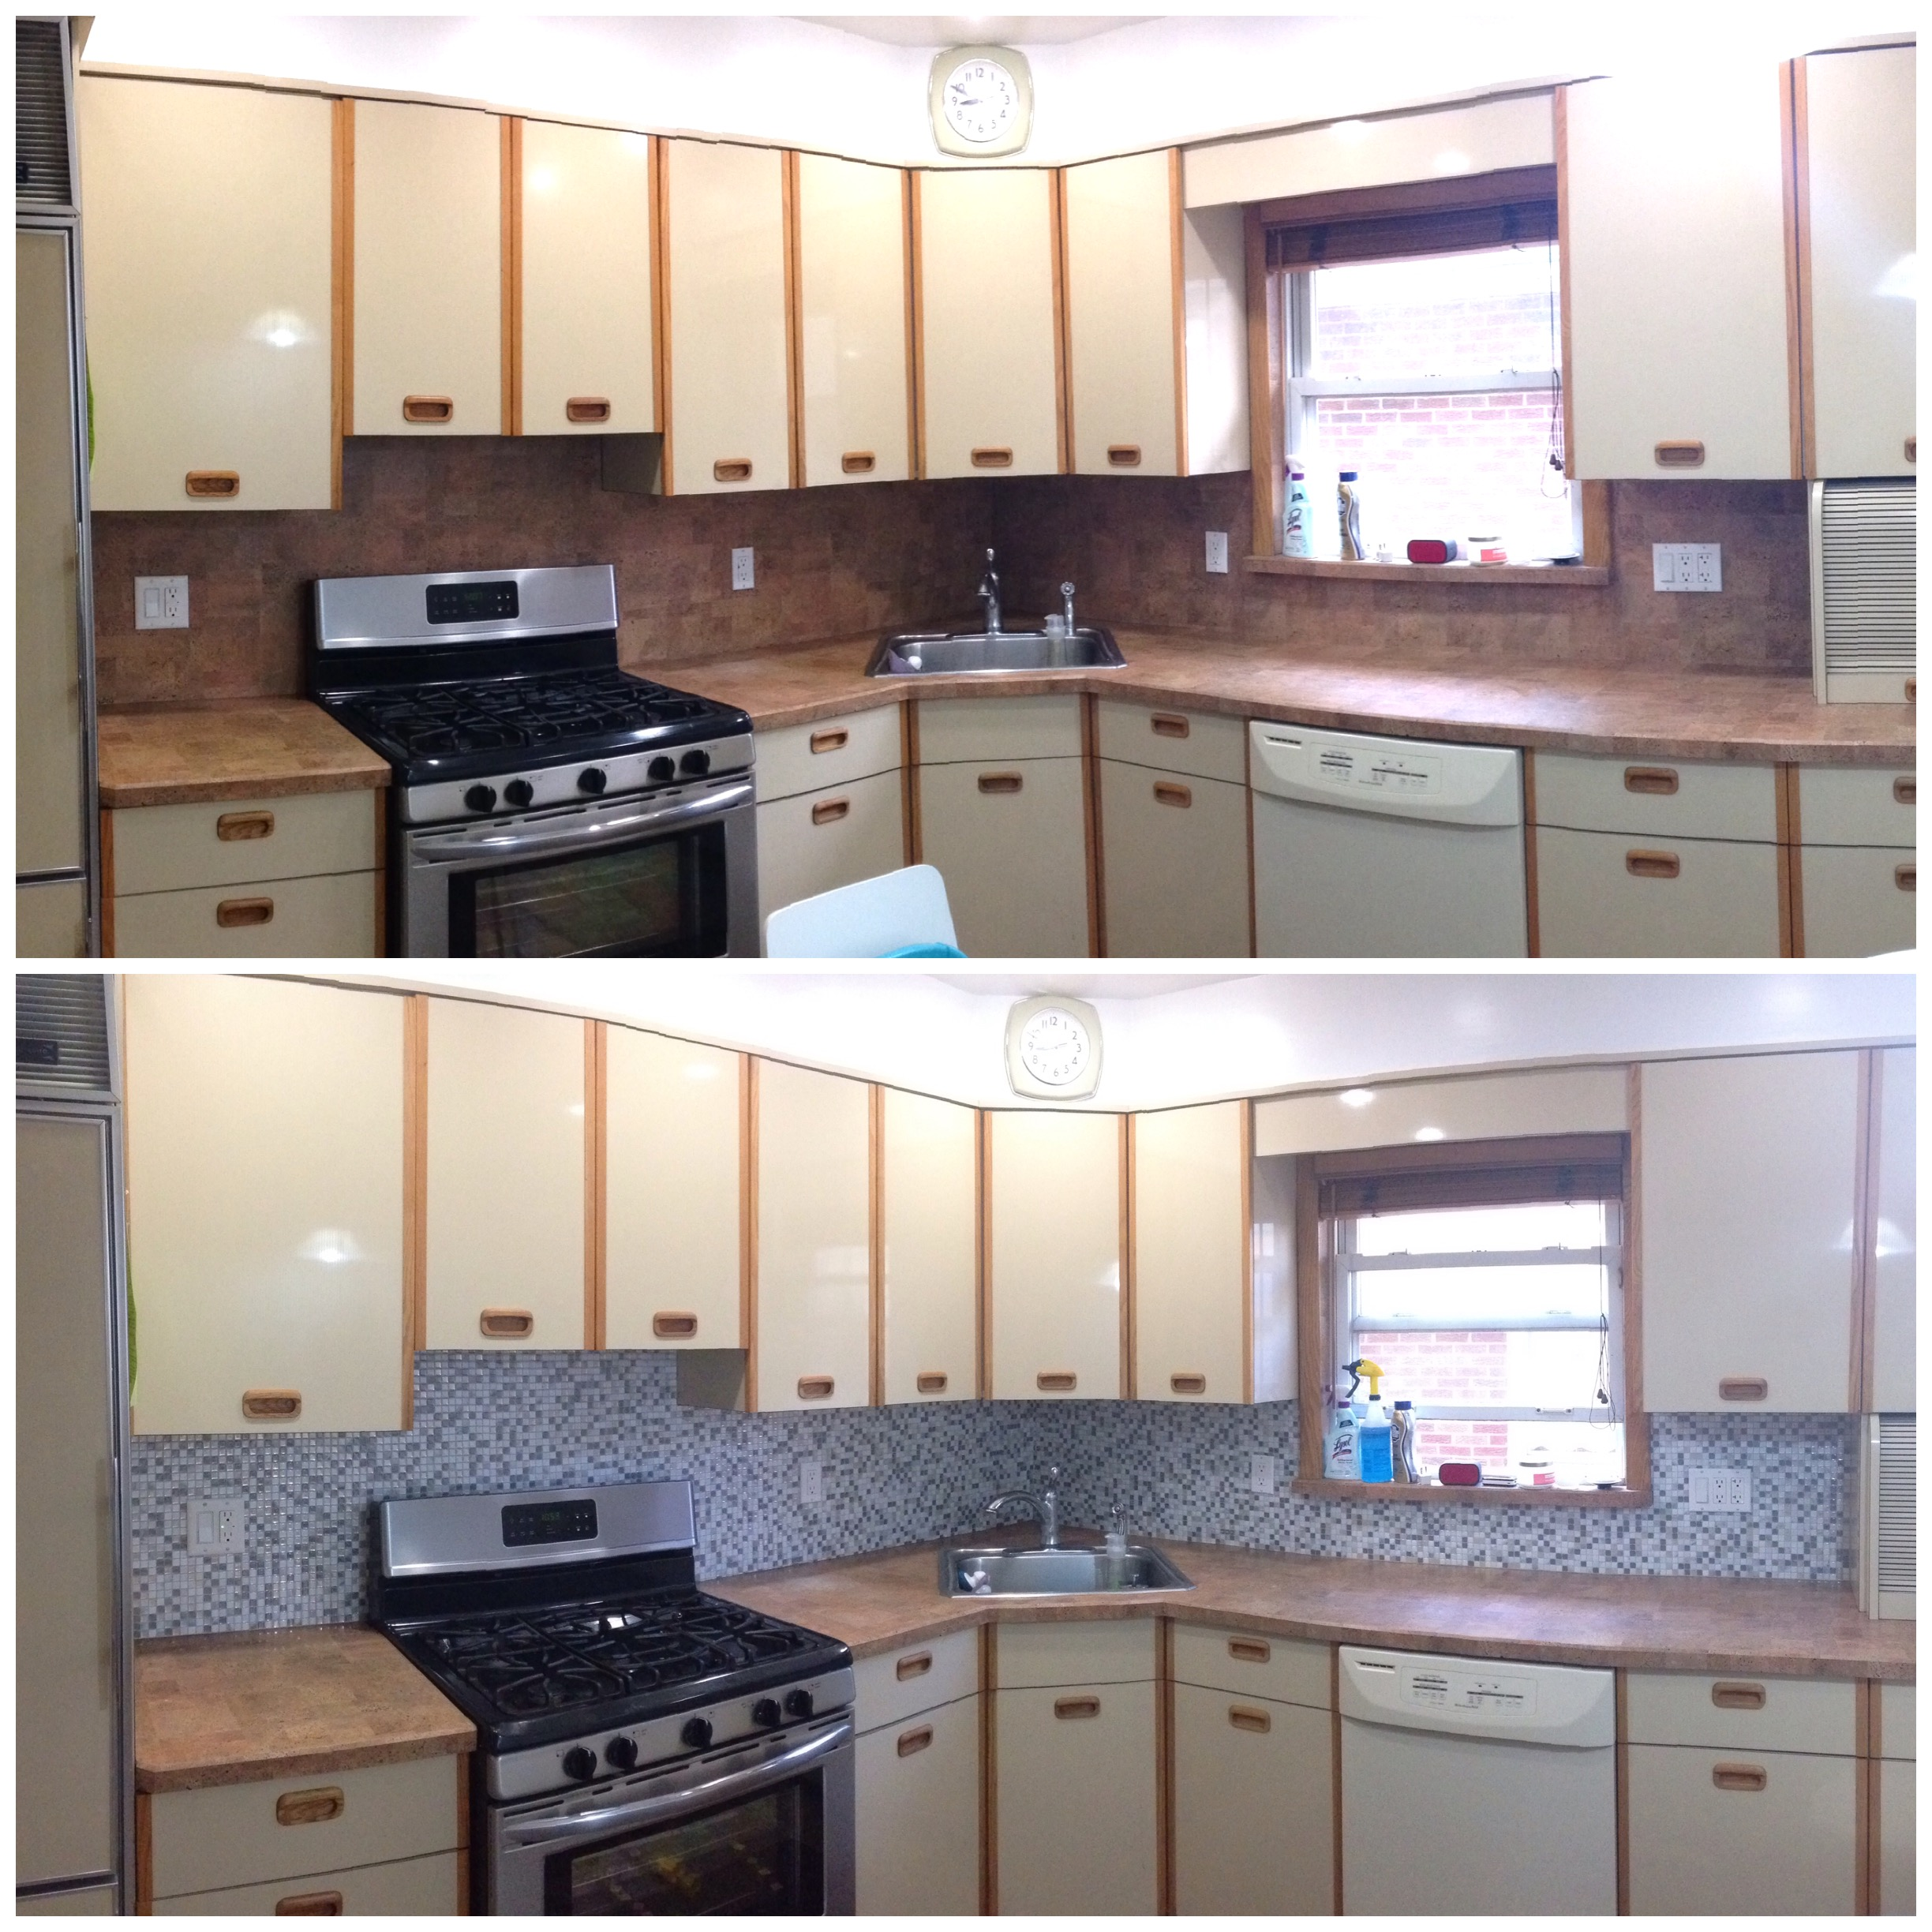 kitchen facelift before and after wine rugs with stickers helen hou sandí